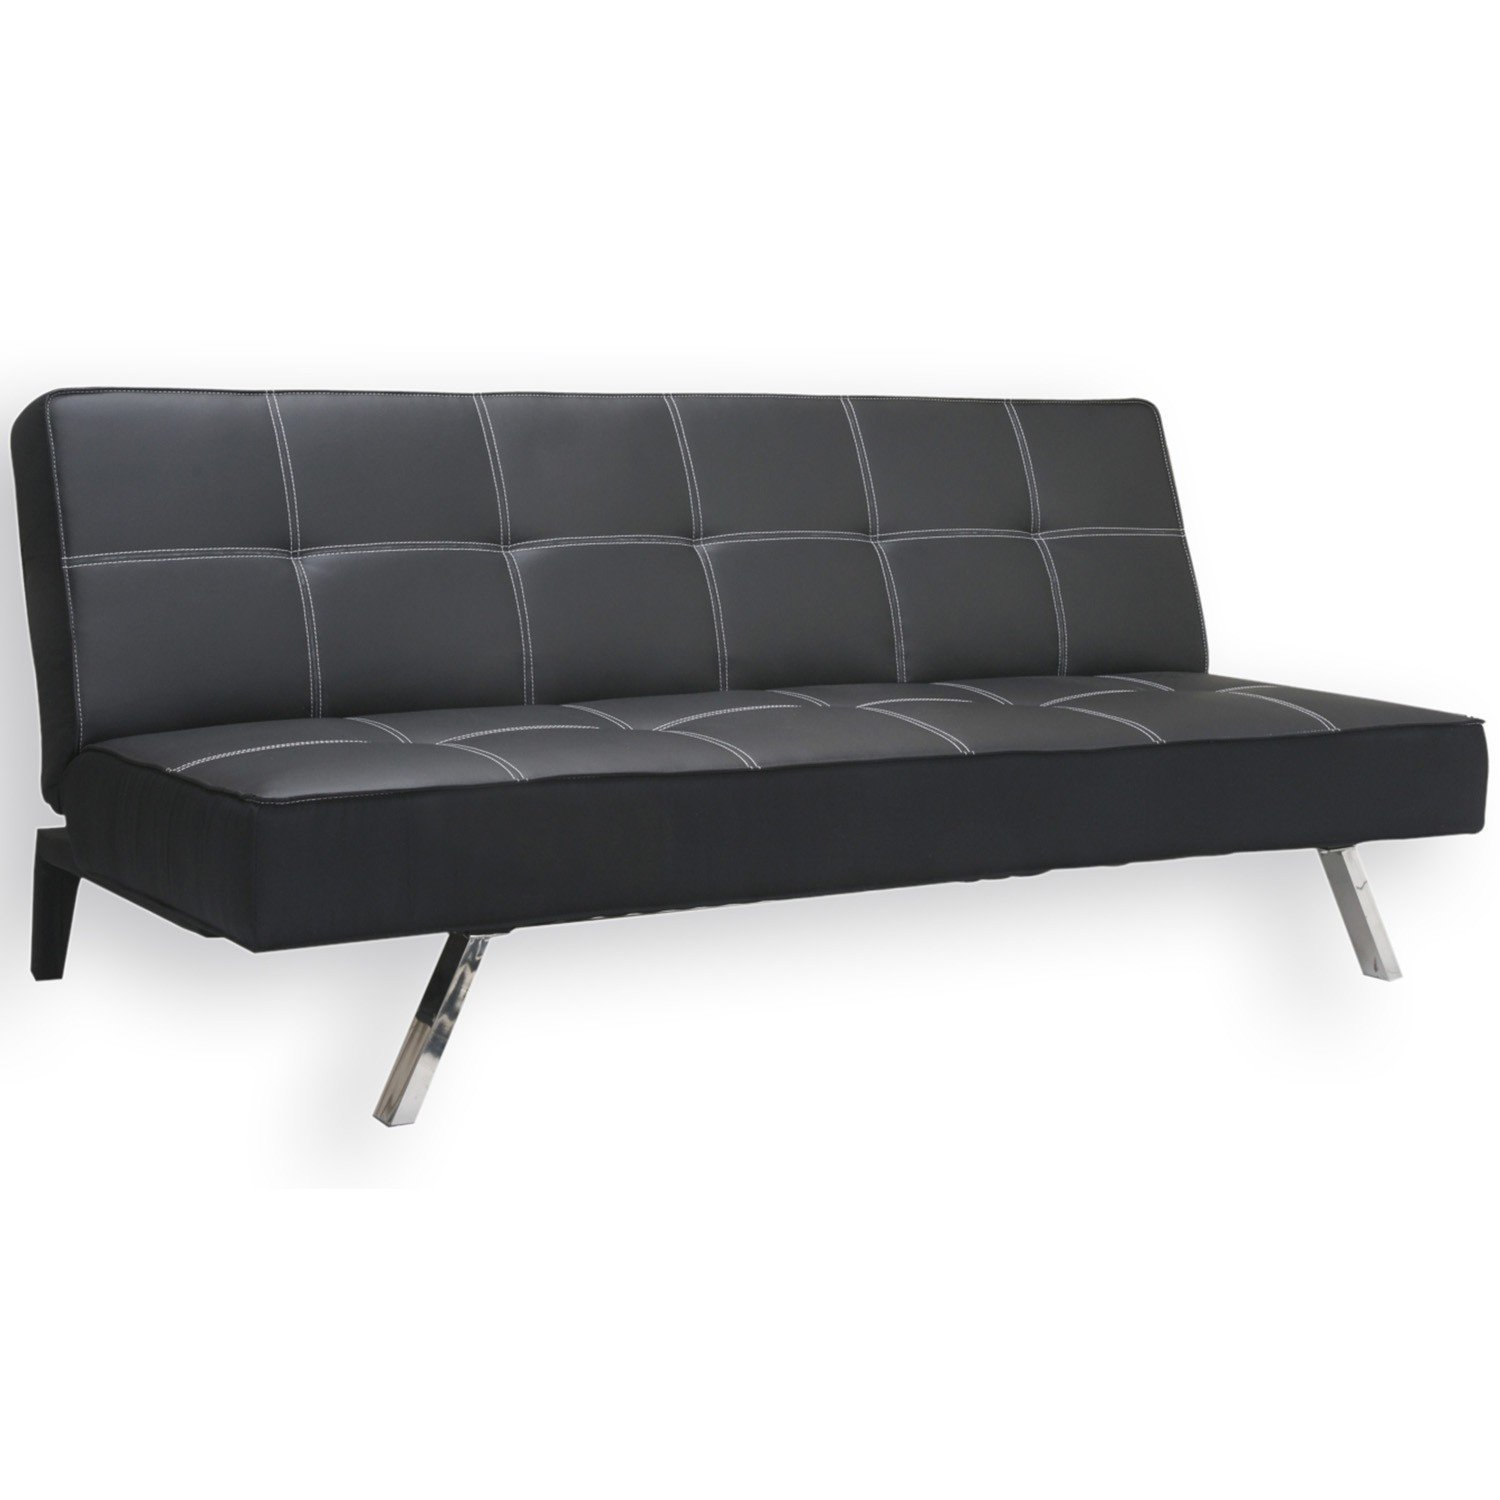 idimex chic design schlafsofa im test g stebett24. Black Bedroom Furniture Sets. Home Design Ideas